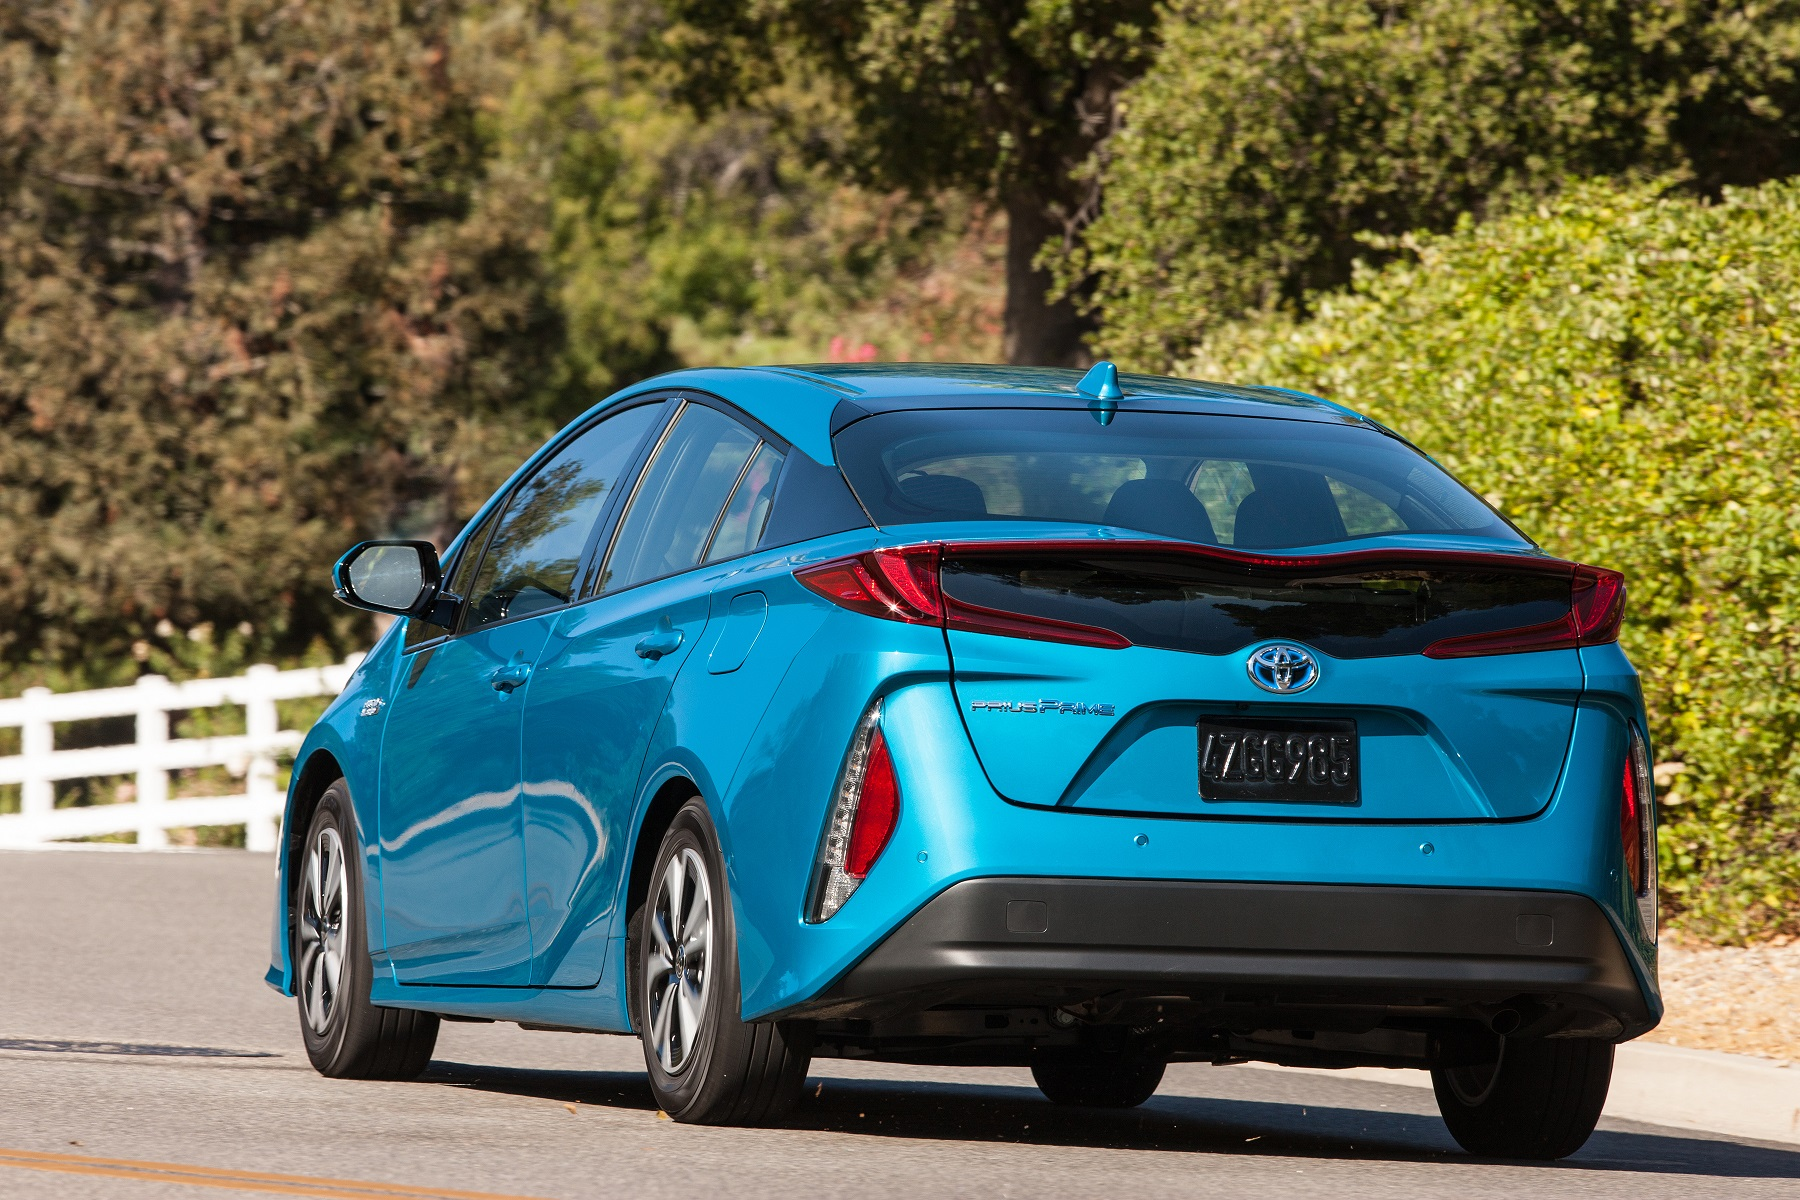 2017 Prius Prime The Best of Toyota s Prius New on Wheels